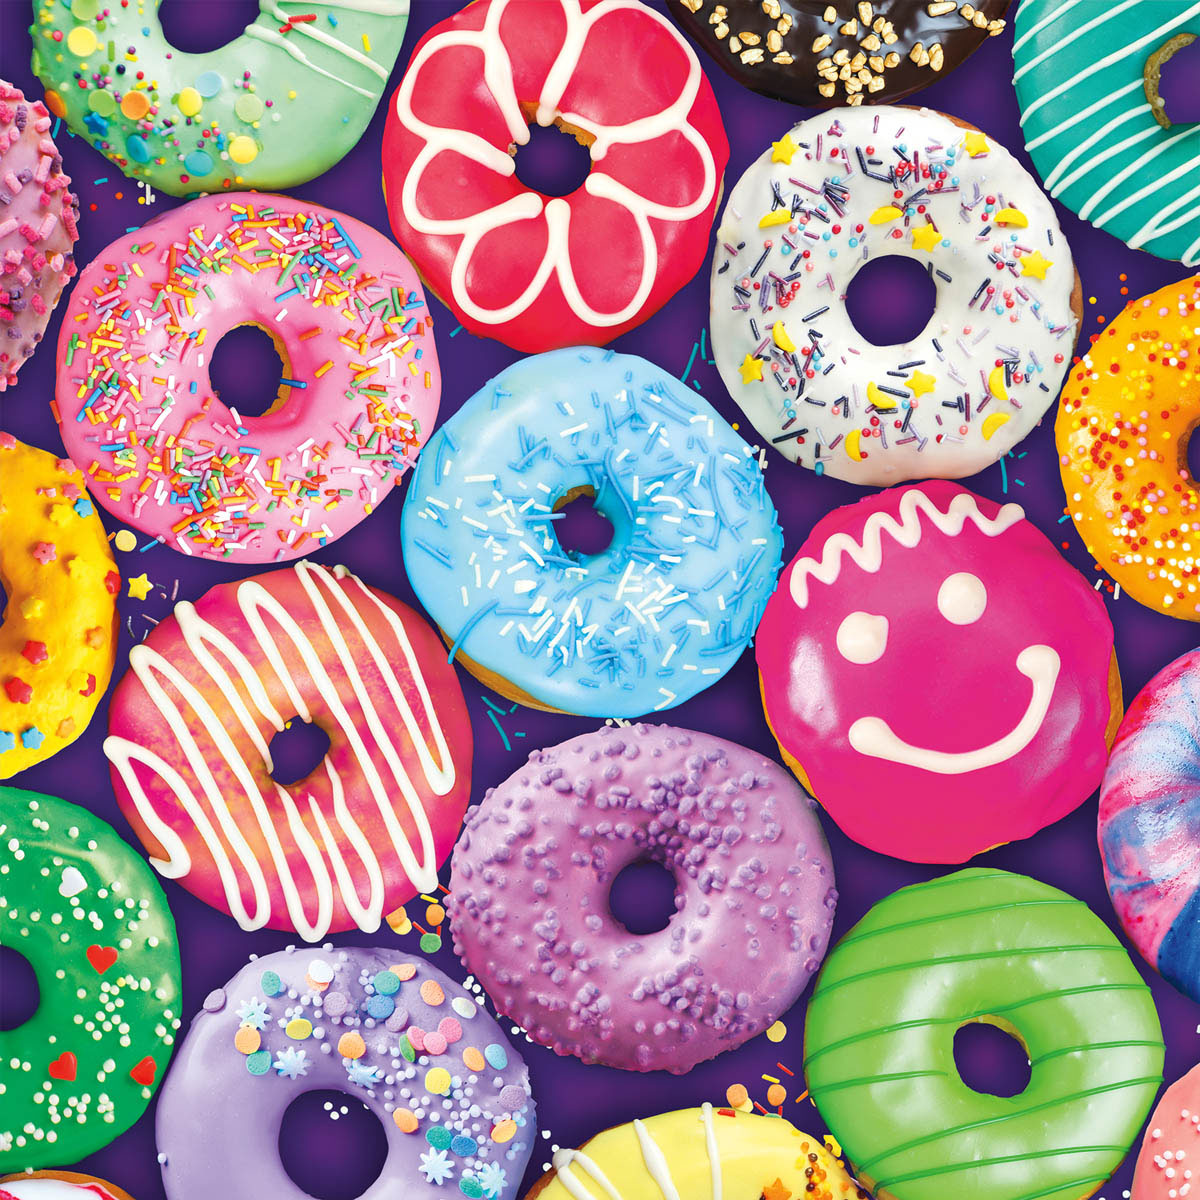 Delightful Donuts Food and Drink Jigsaw Puzzle